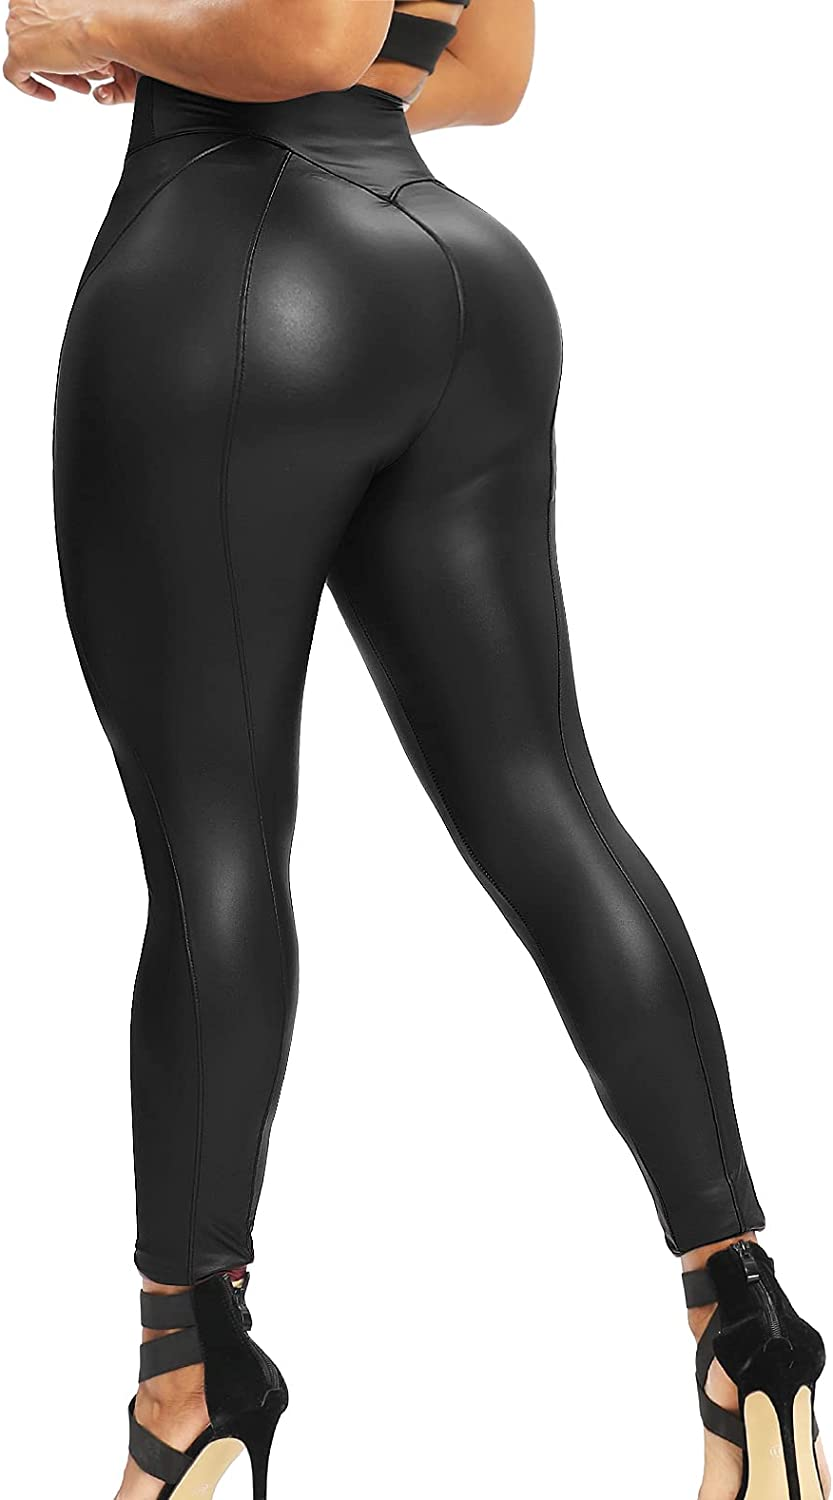 STARBILD Faux Leather Pants for Albuquerque online shop Mall Women Up Push Butt Shaping Sexy